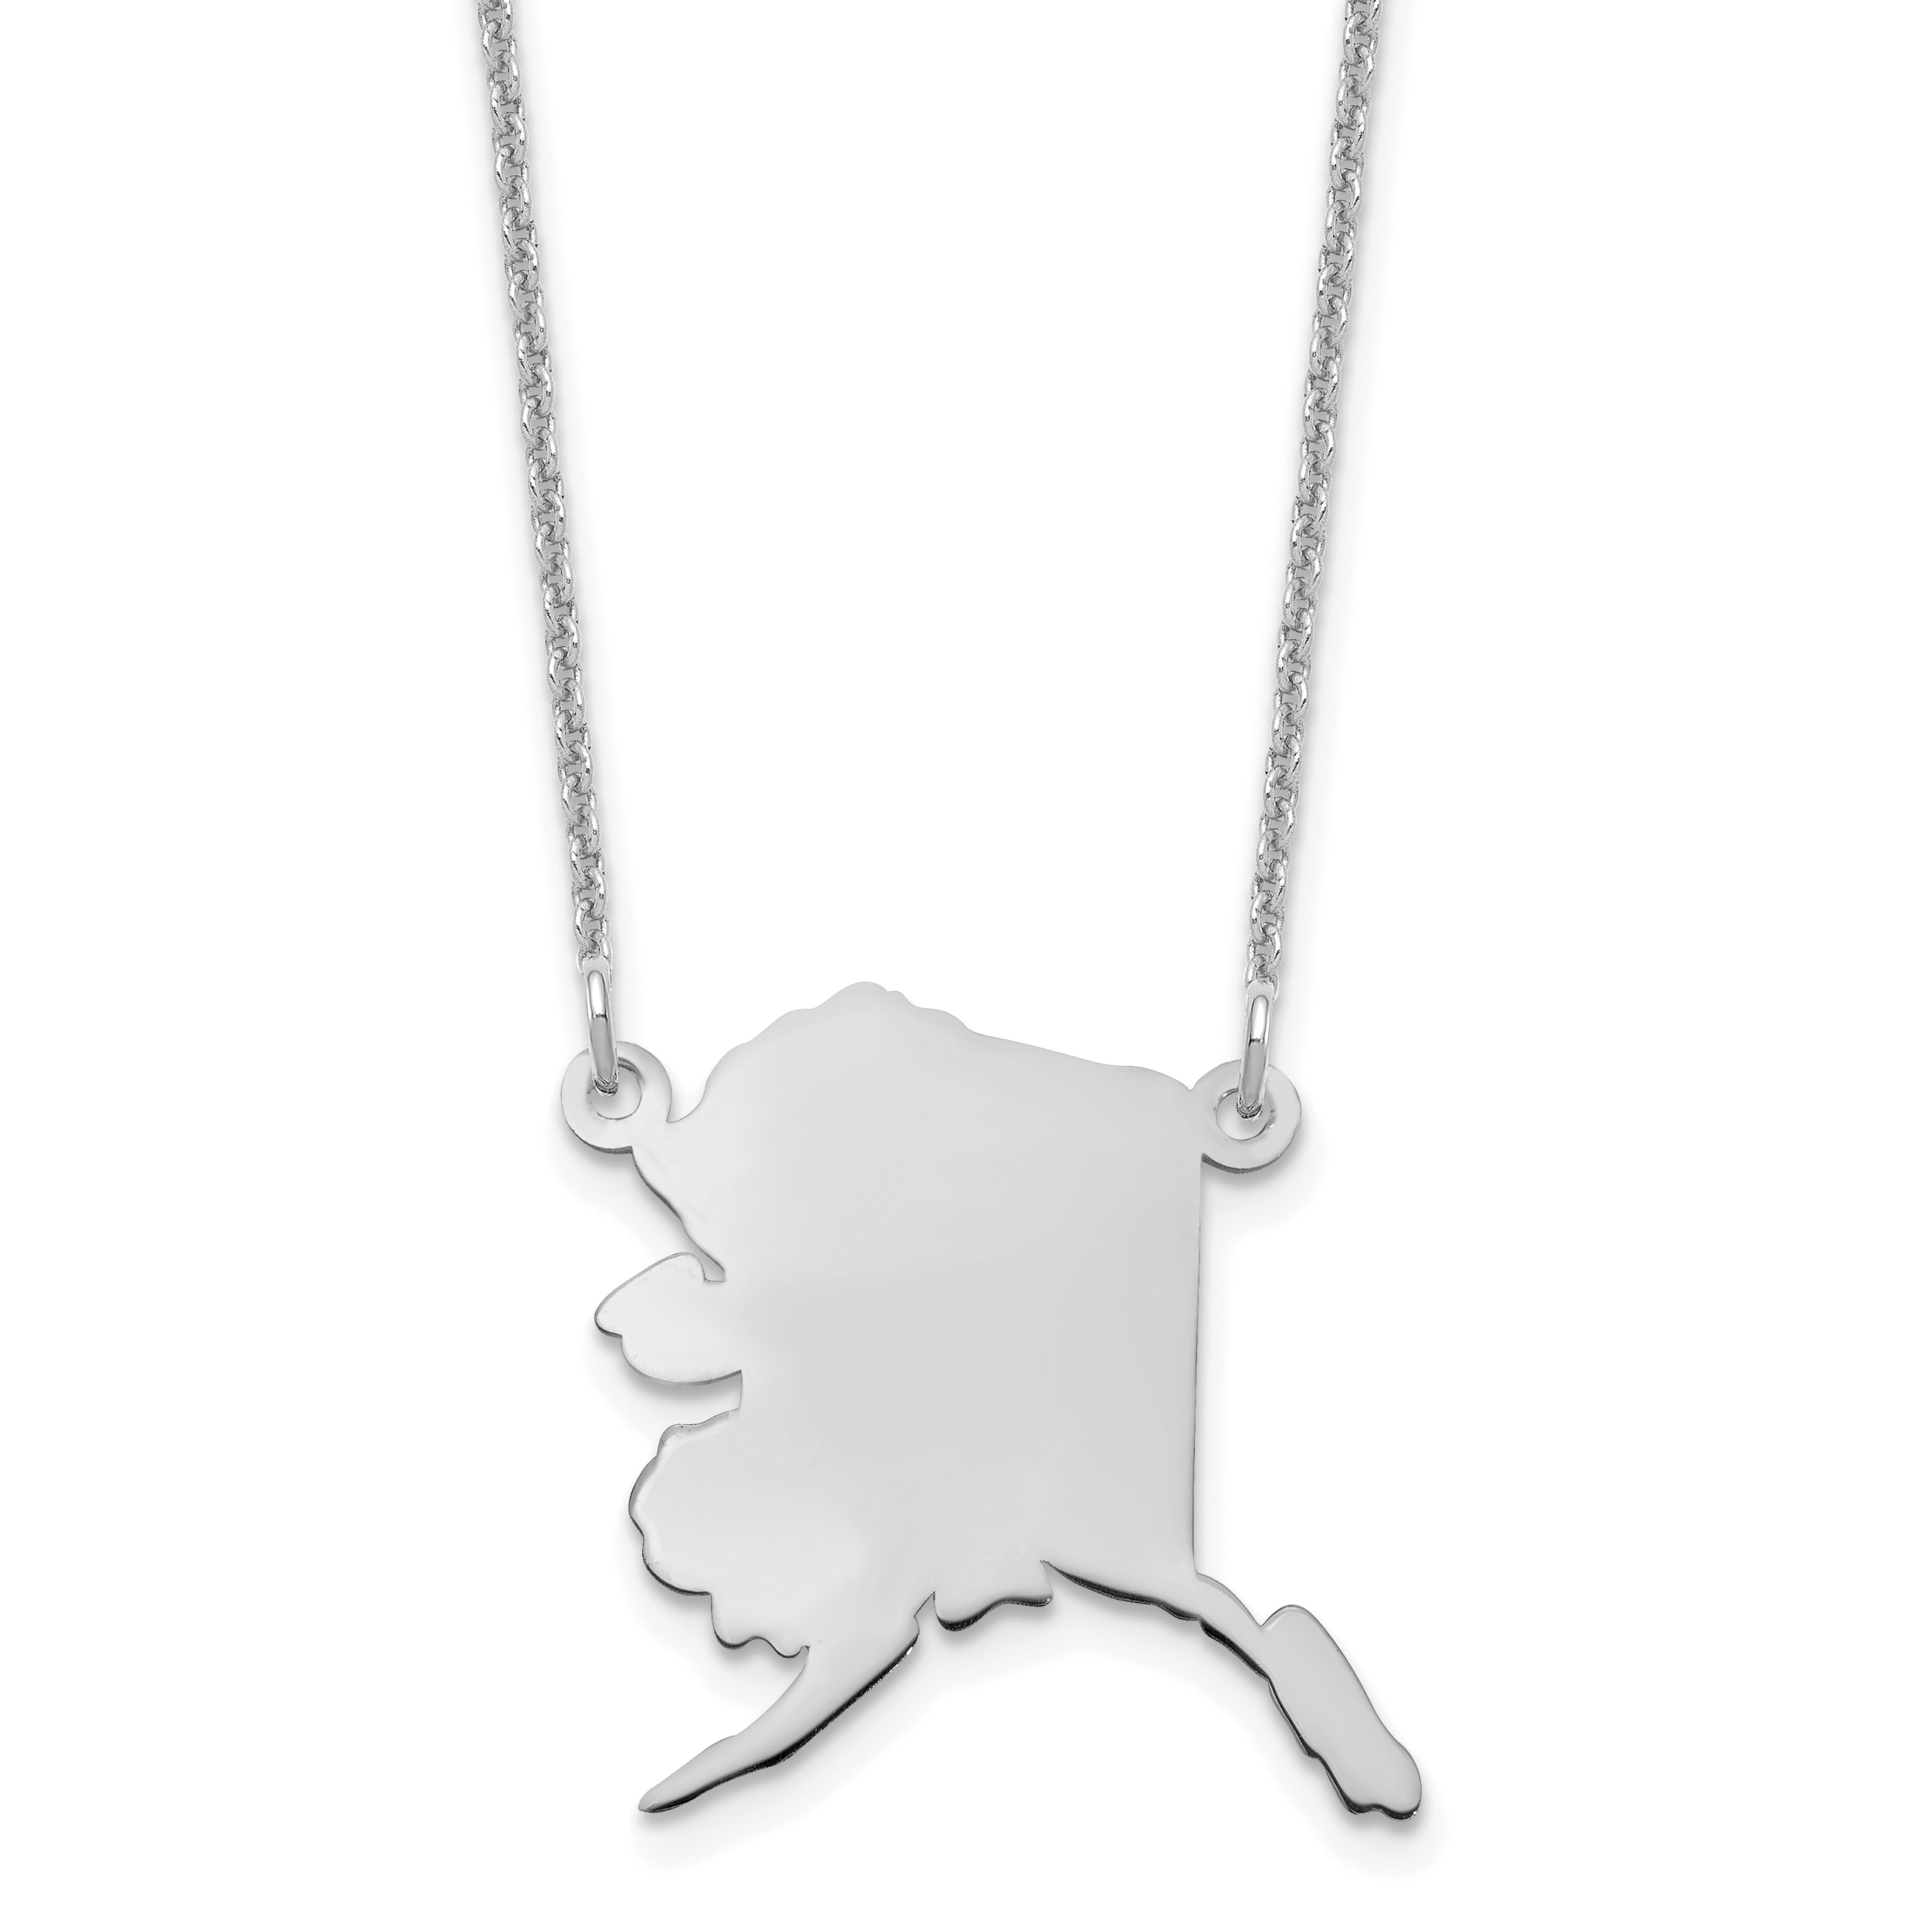 Mireval Sterling Silver Big Sister Charm on an Optional Charm Holder